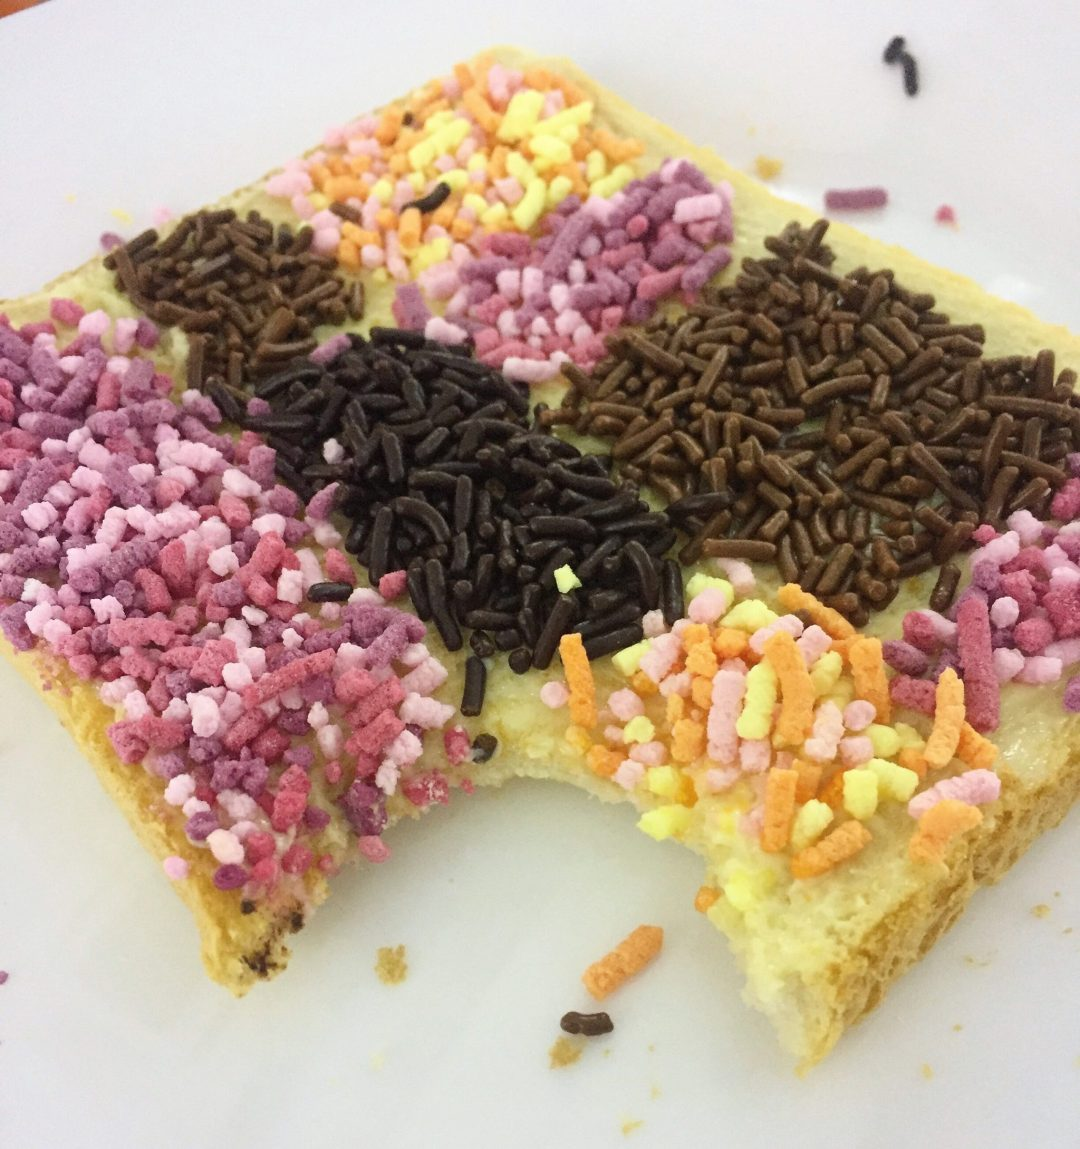 A Sprinkle Cafe is Open in Leicester Square this Weekend!